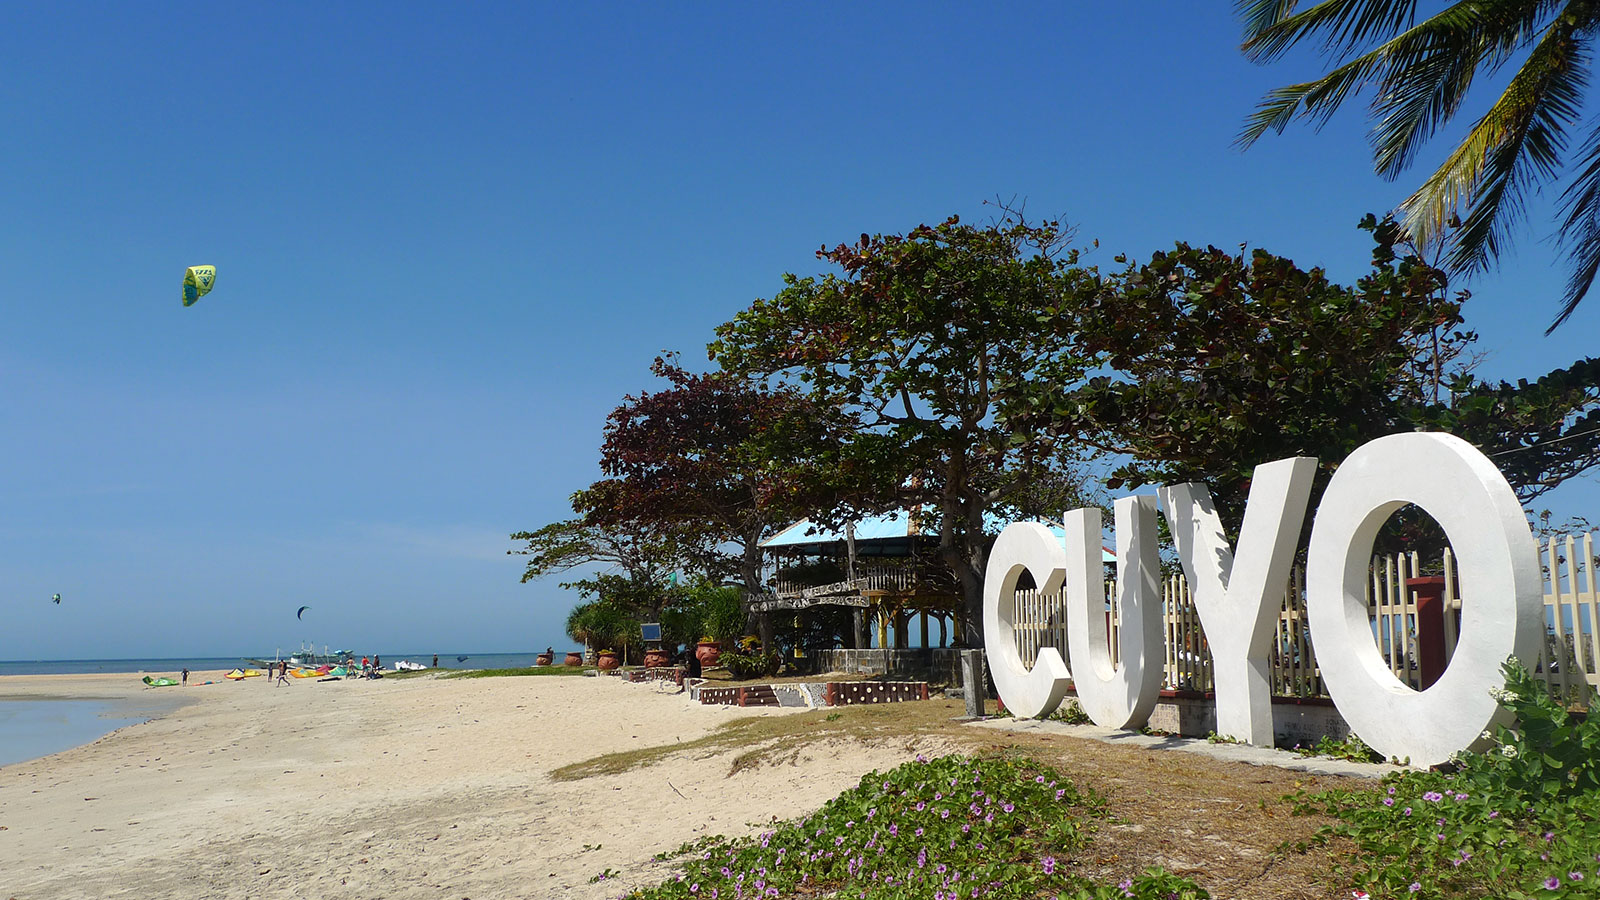 Cuyo sign and Capusan kitesurfing beach in the background.